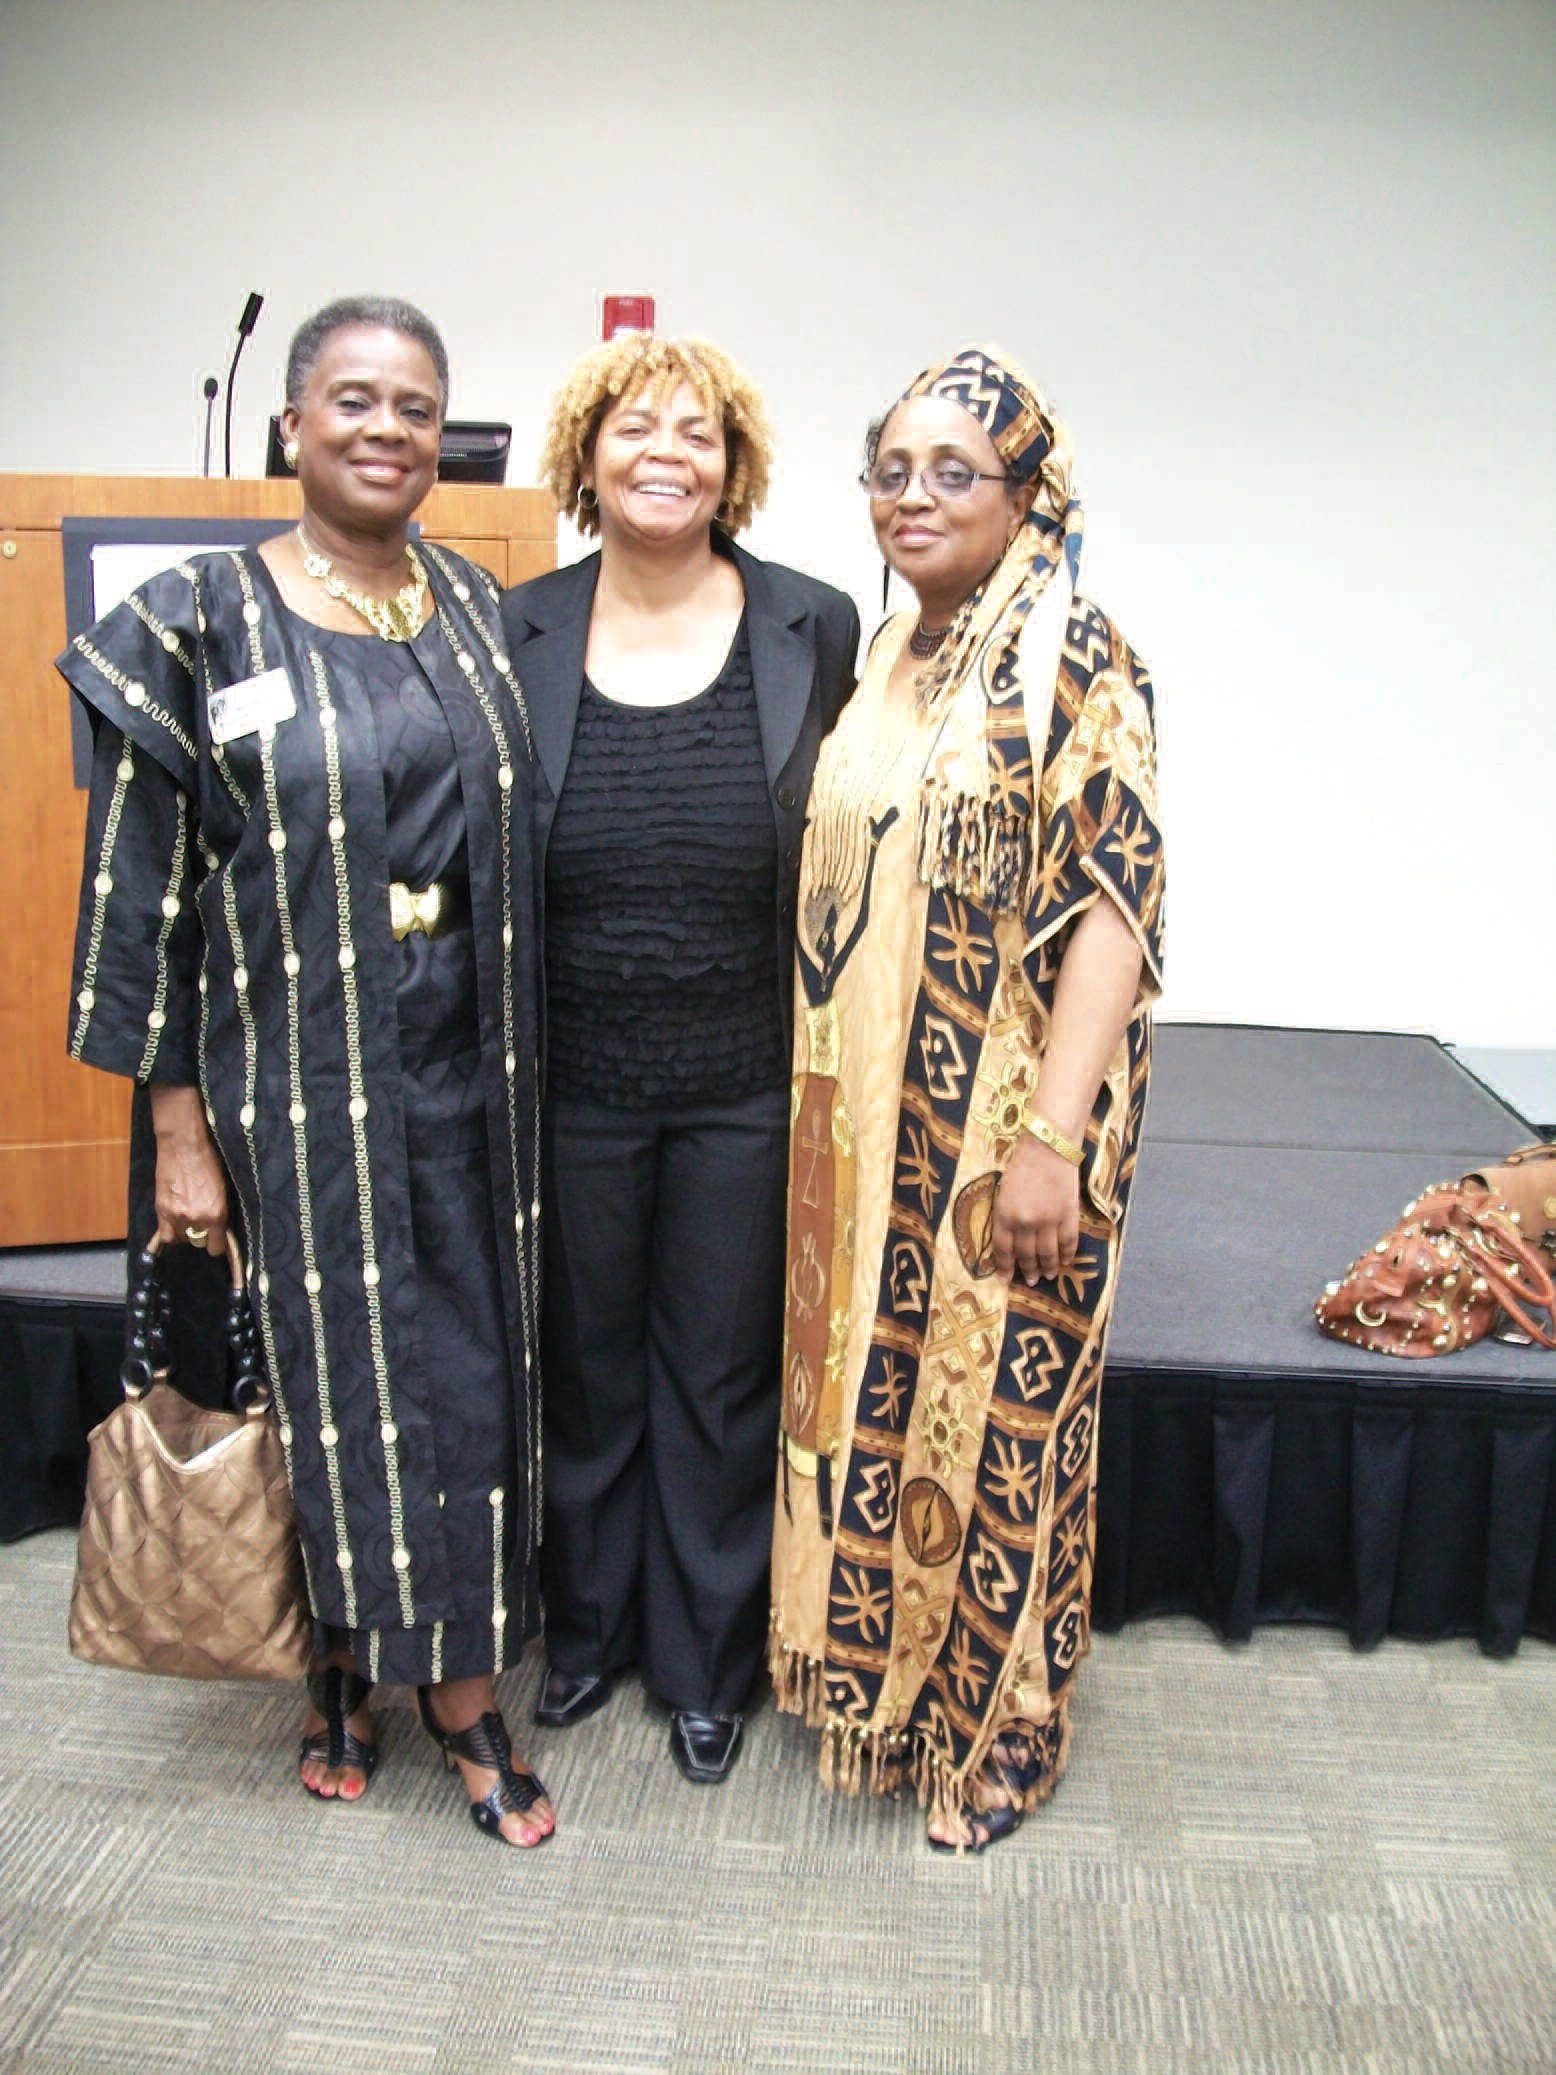 NCNW President Ruby C. Hall (center) is joined by Past-Presidents Estelle Mannion (left) and Betty Lasseter (right) at the Harambee Breakfast.